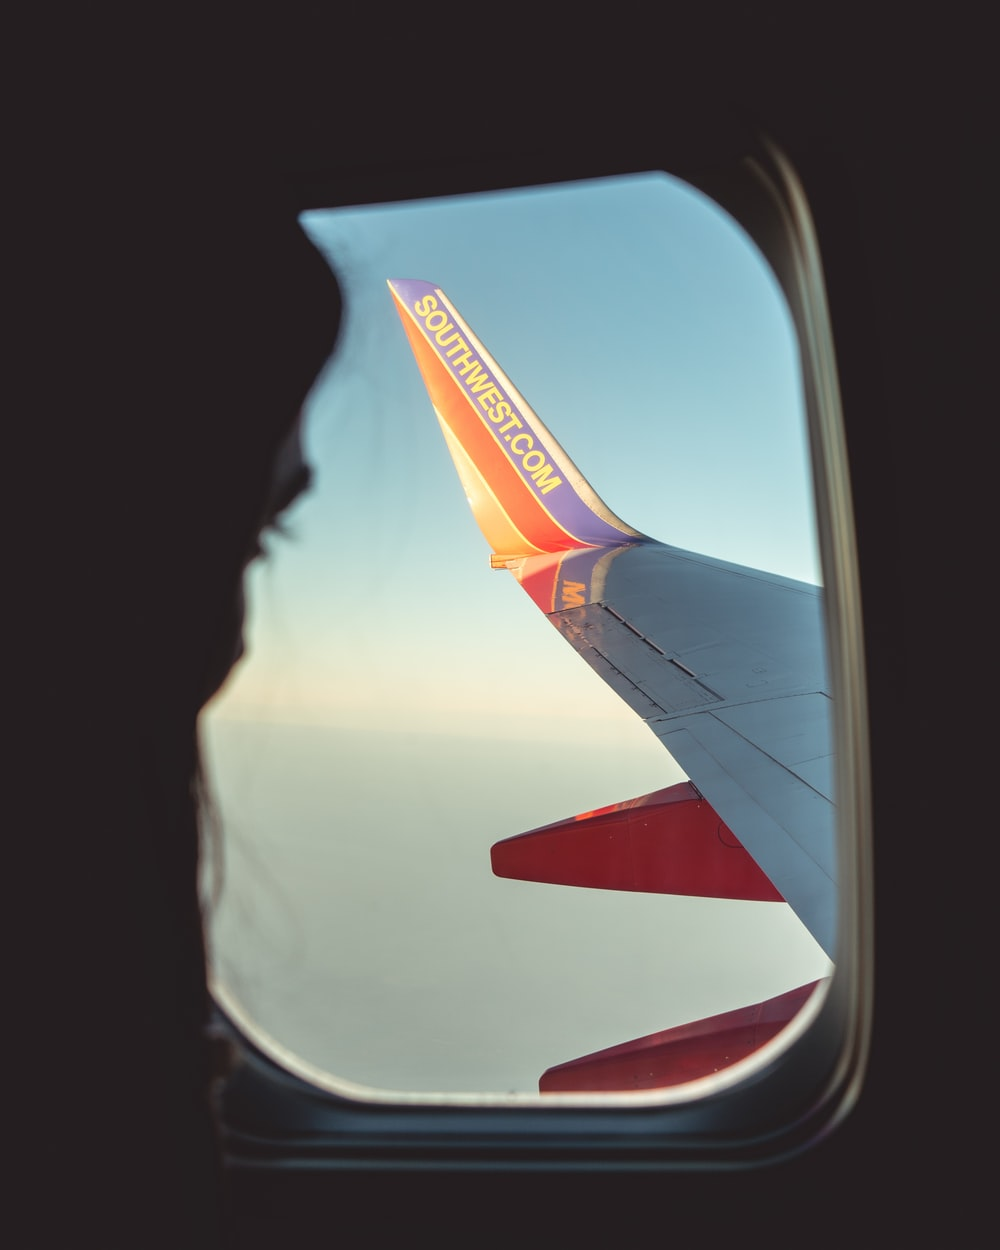 silhouette of person looking at airliner wing